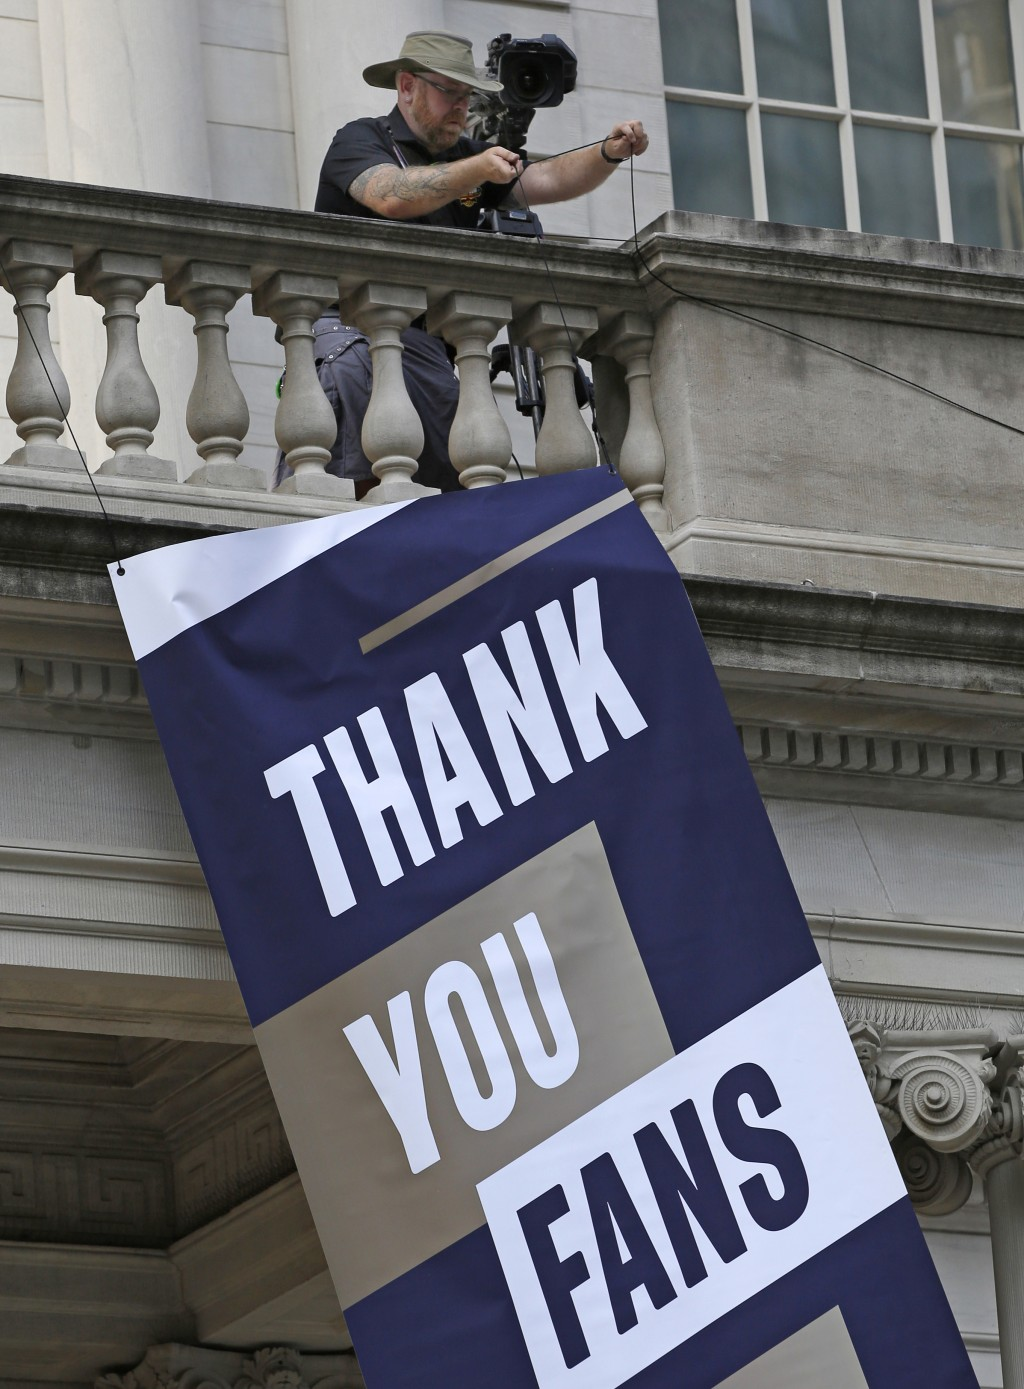 A worker hangs a banner from the balcony at New Yo...